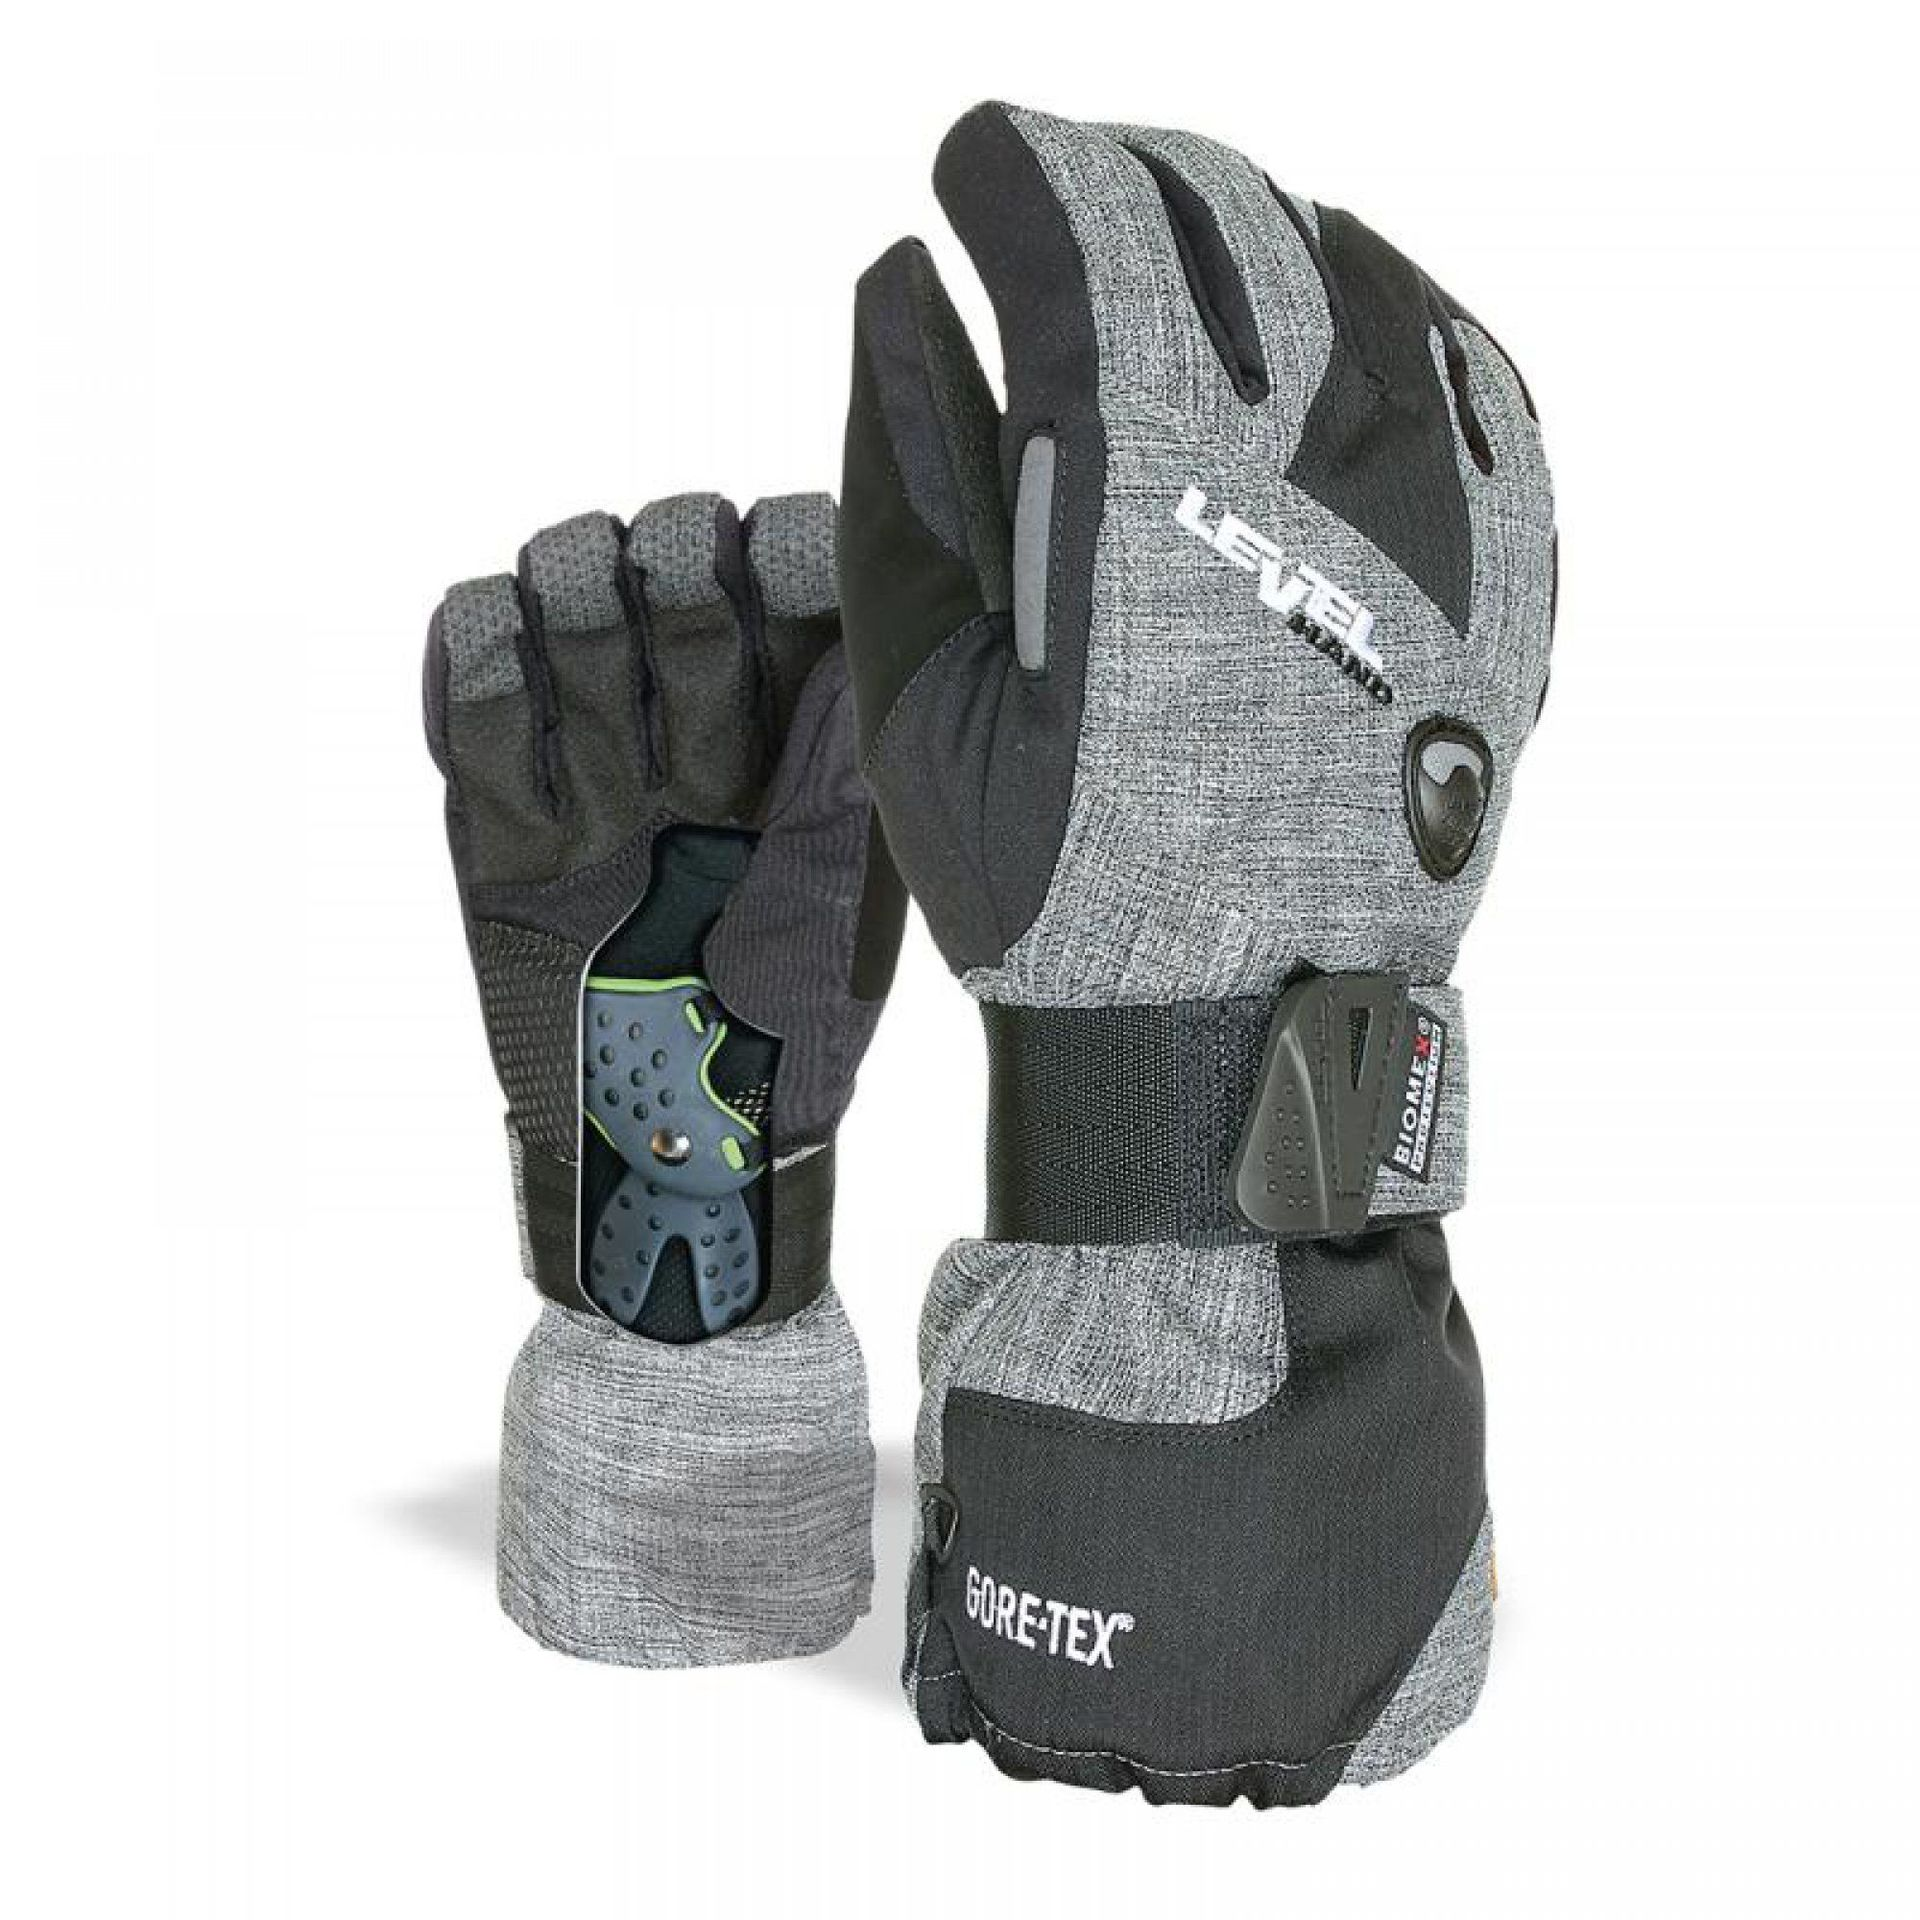 RĘKAWICE LEVEL HALF PIPE GORE-TEX 15 ANTHRACITE